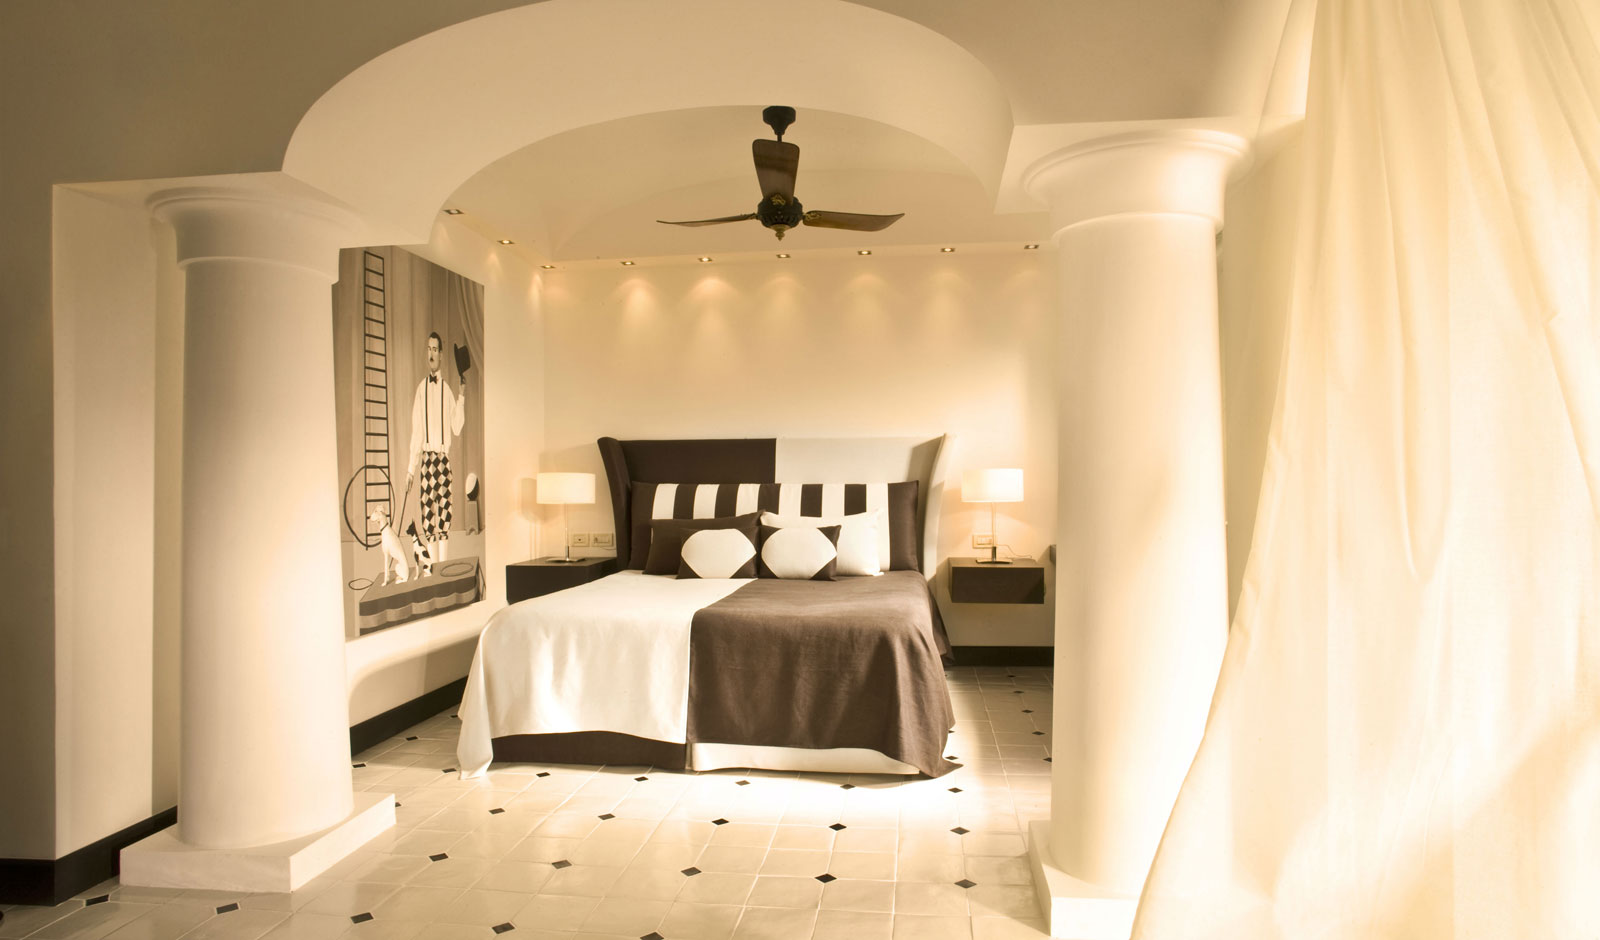 Guest room of the Capri Palace hotel, Anacapri